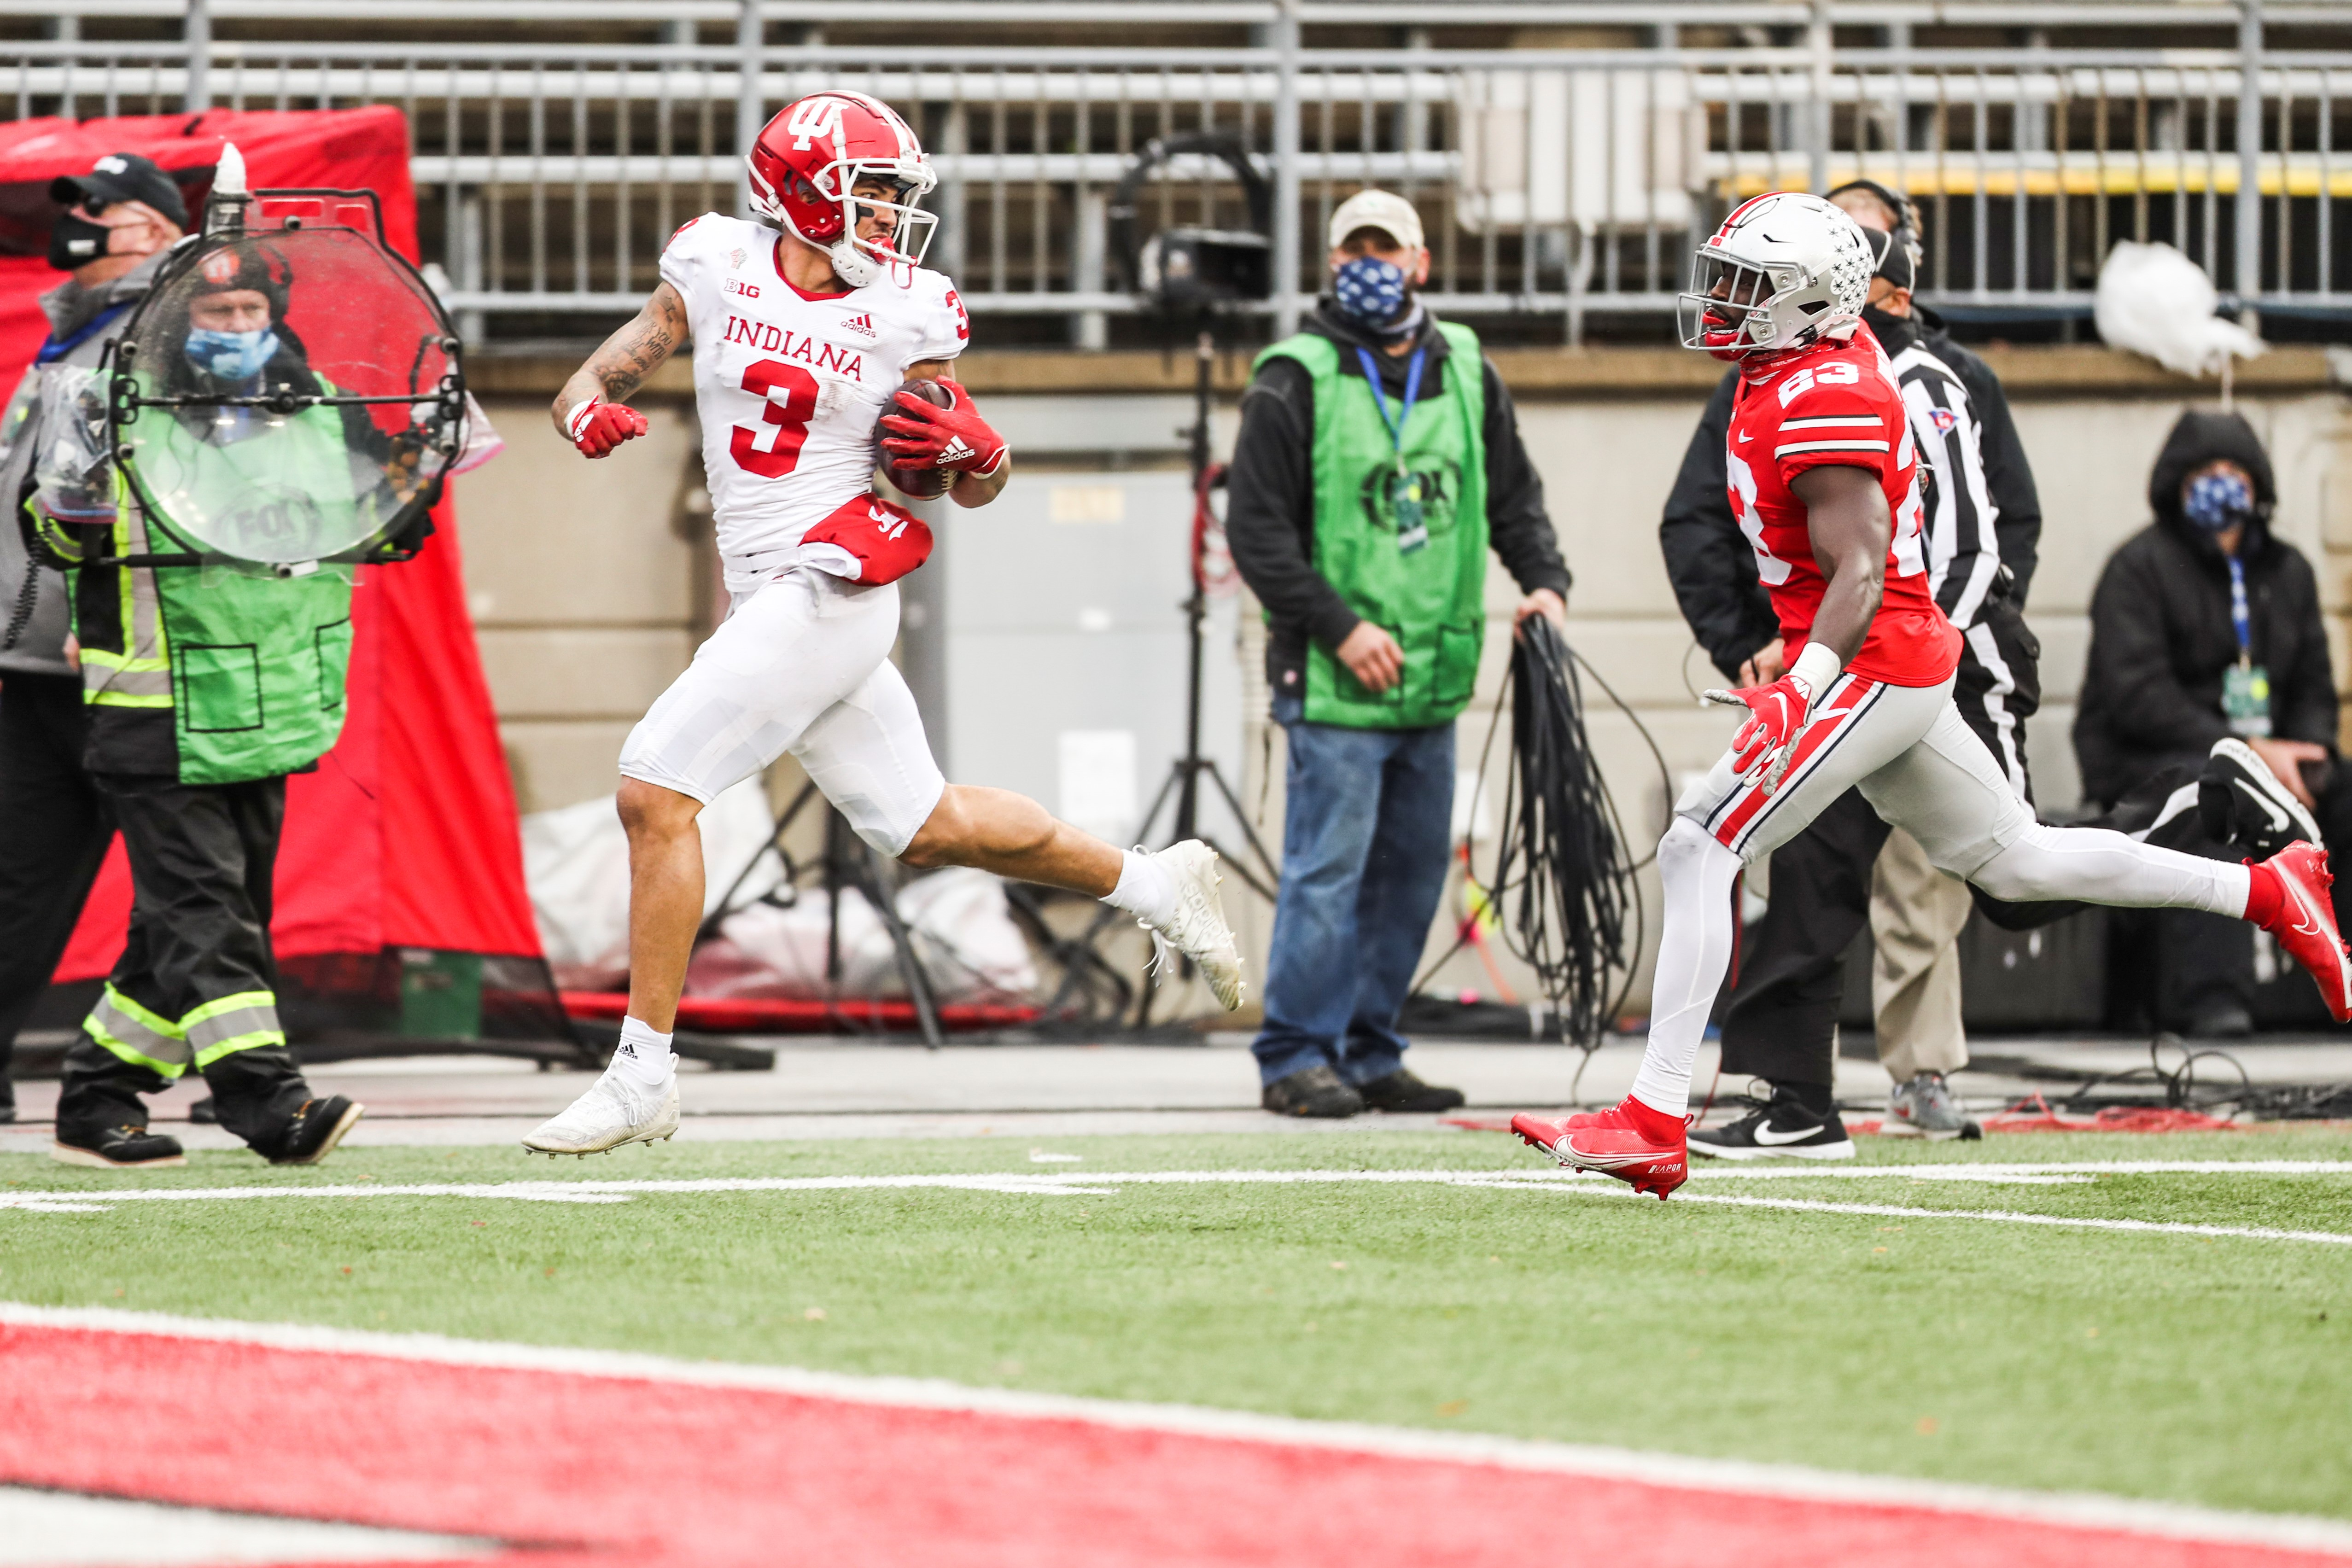 Indiana wide receiver Ty Fryfogle catches a 63-yard touchdown pass against Ohio State Saturday.